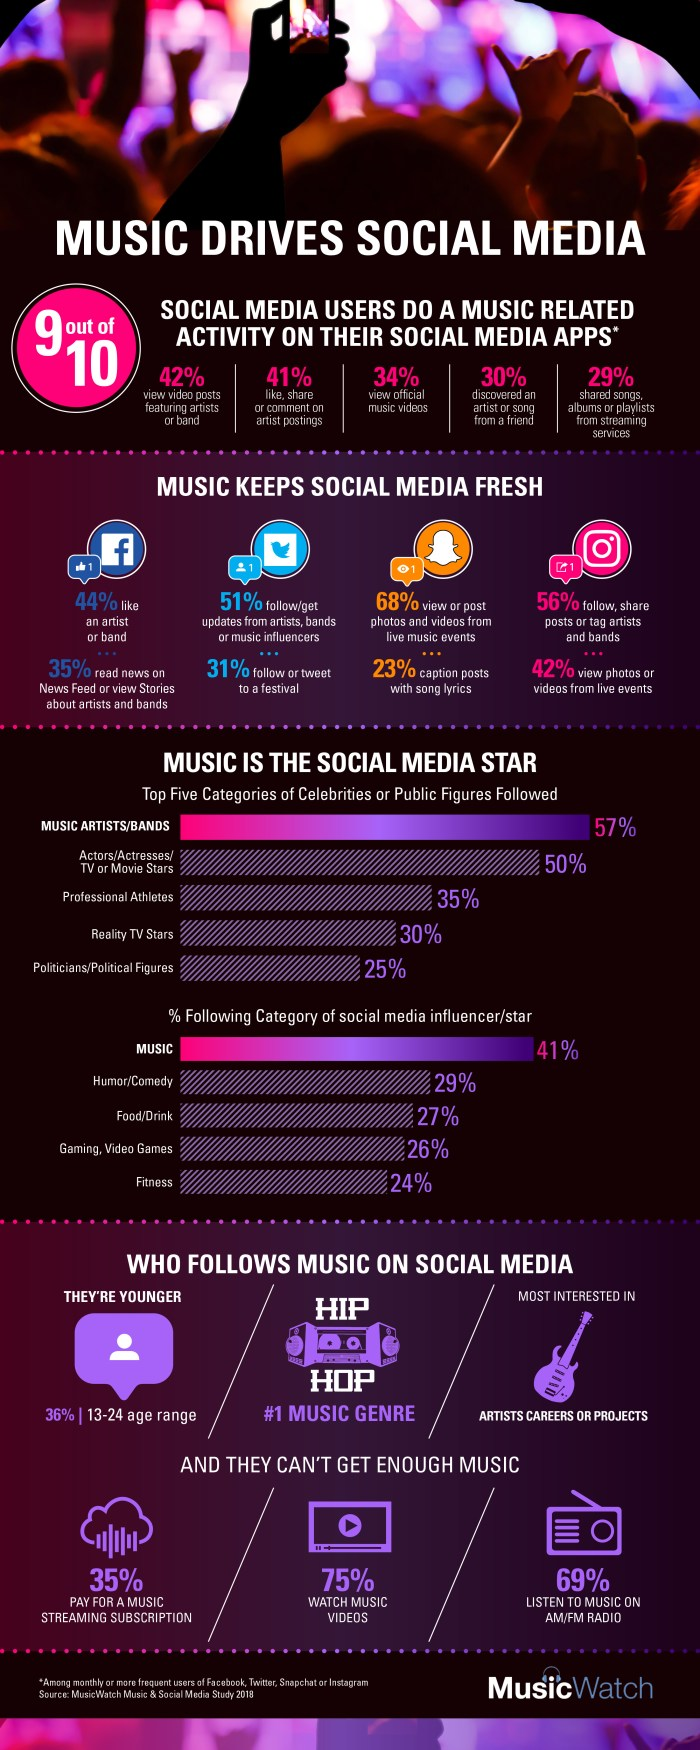 MusicWatch-Social-0818-Infographic-e1533582093944